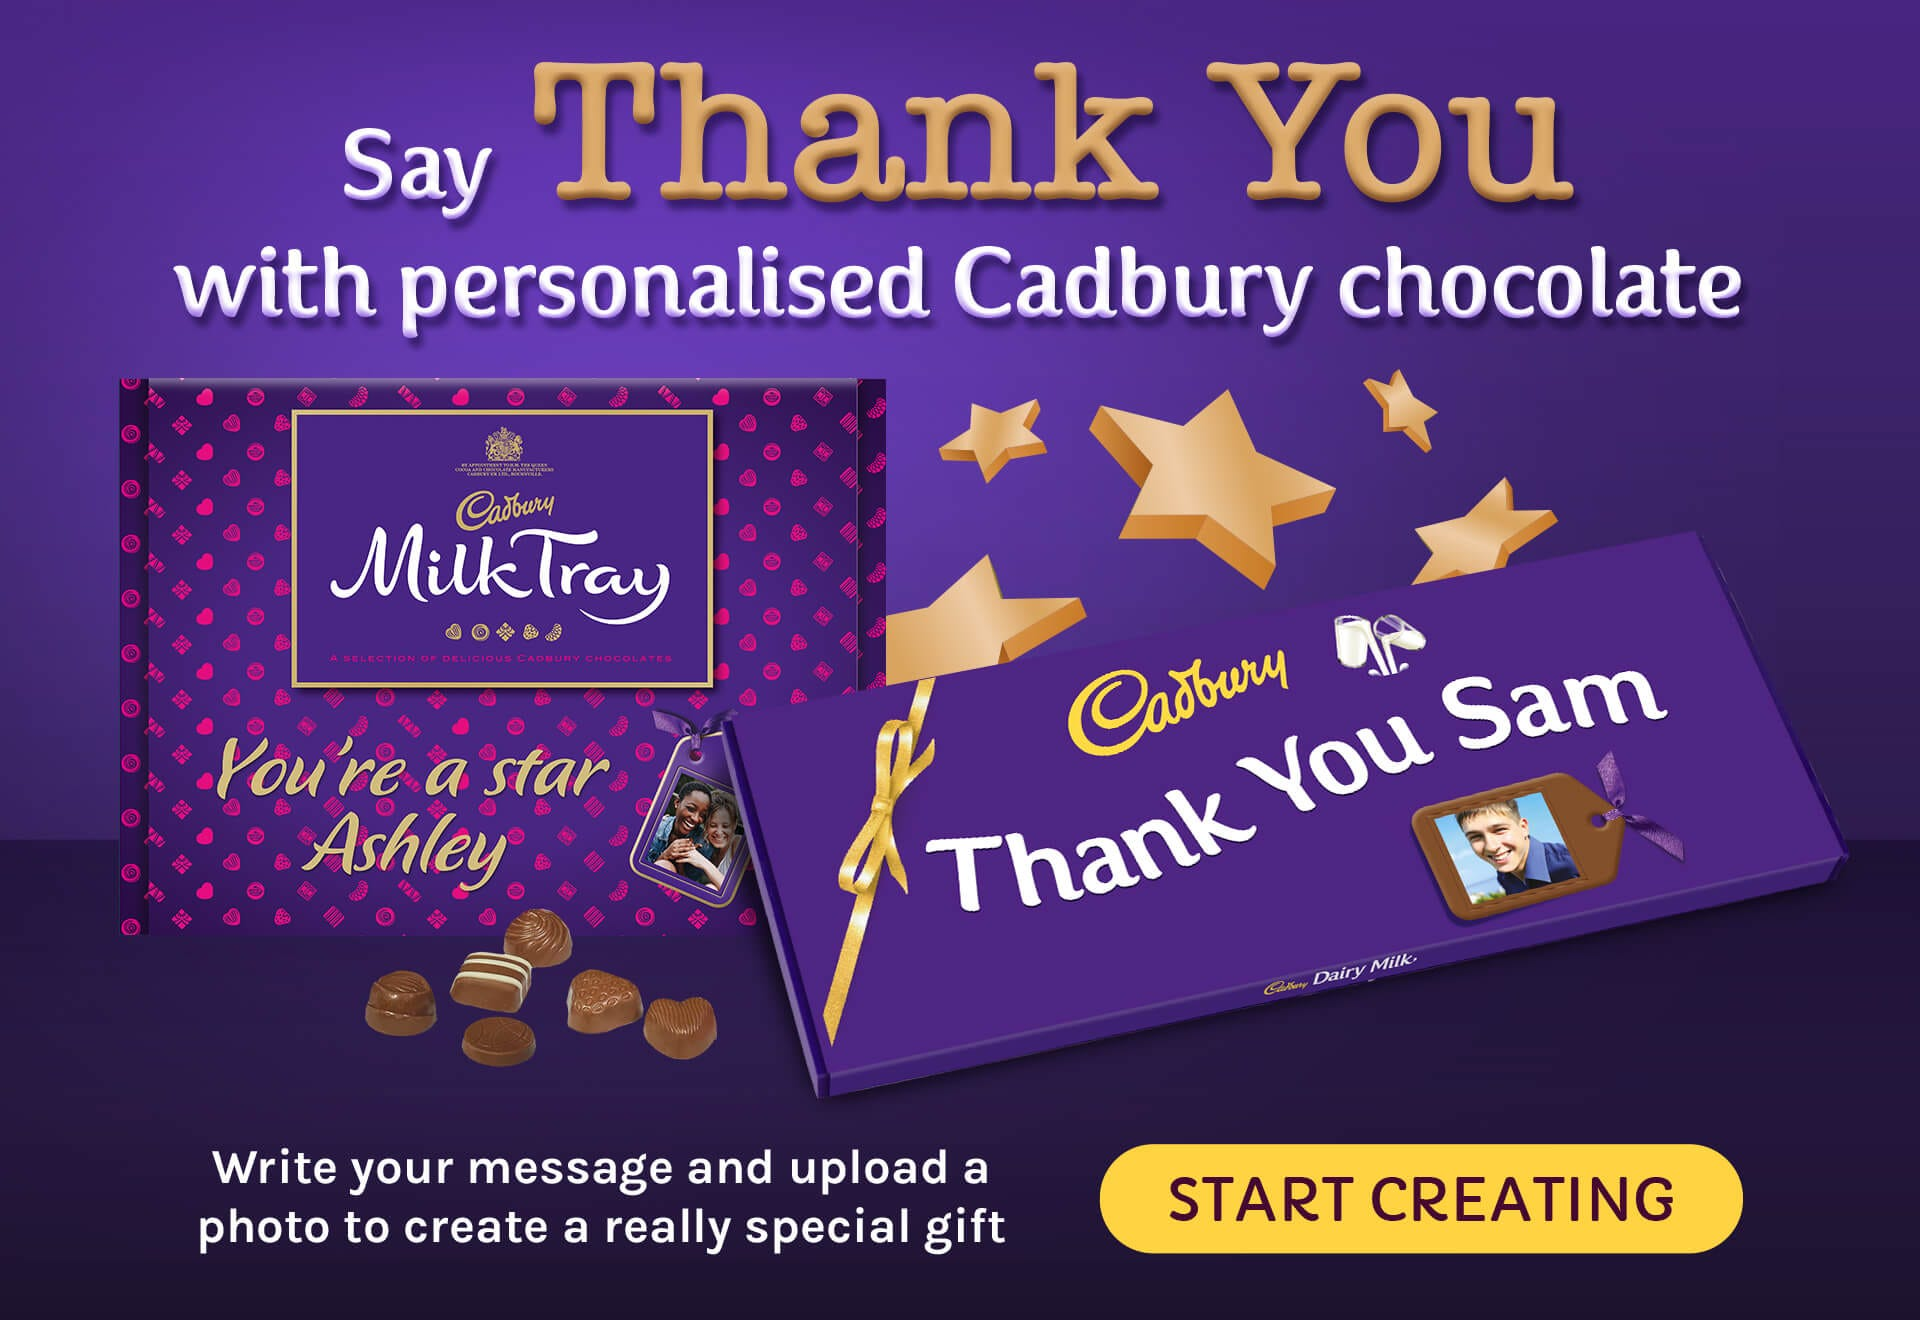 Say thank you to someone special with our fantastic range of personalised chocolate at Cadbury Gifts Direct